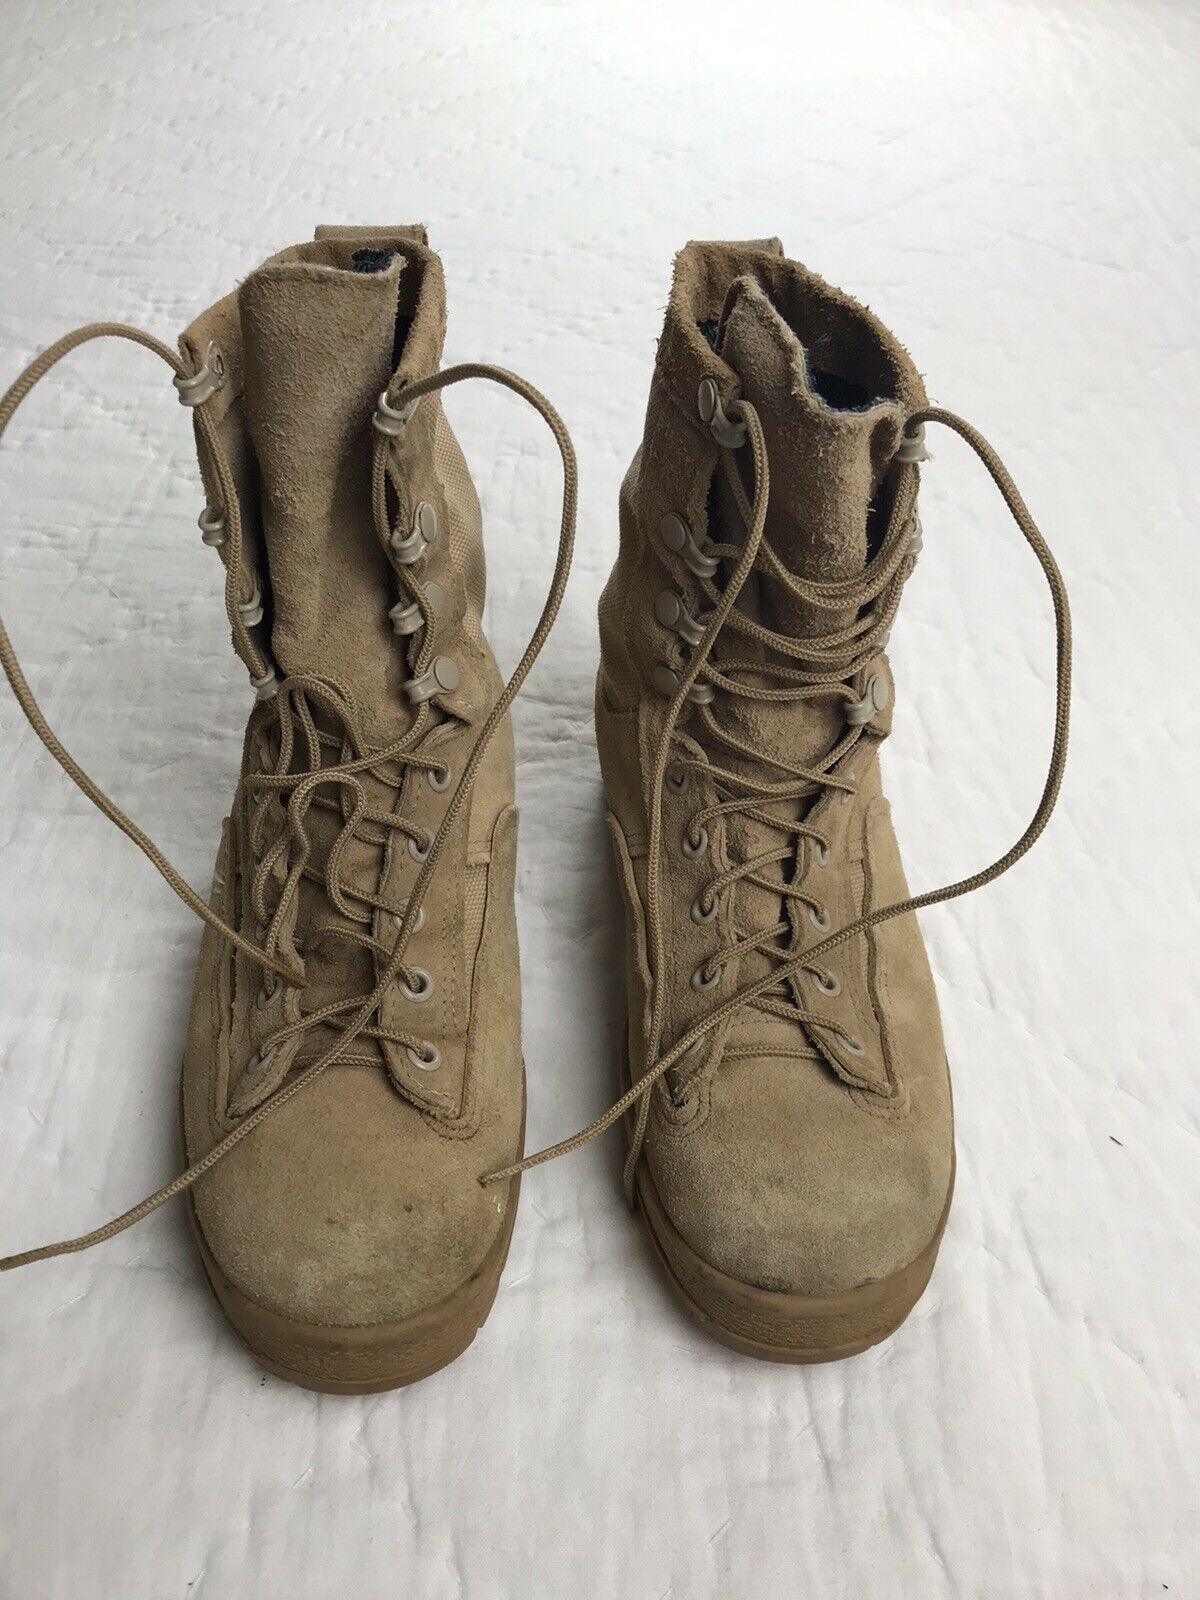 McRae Military Boots For Flight and Vehicle Crewman Use Size 5 W